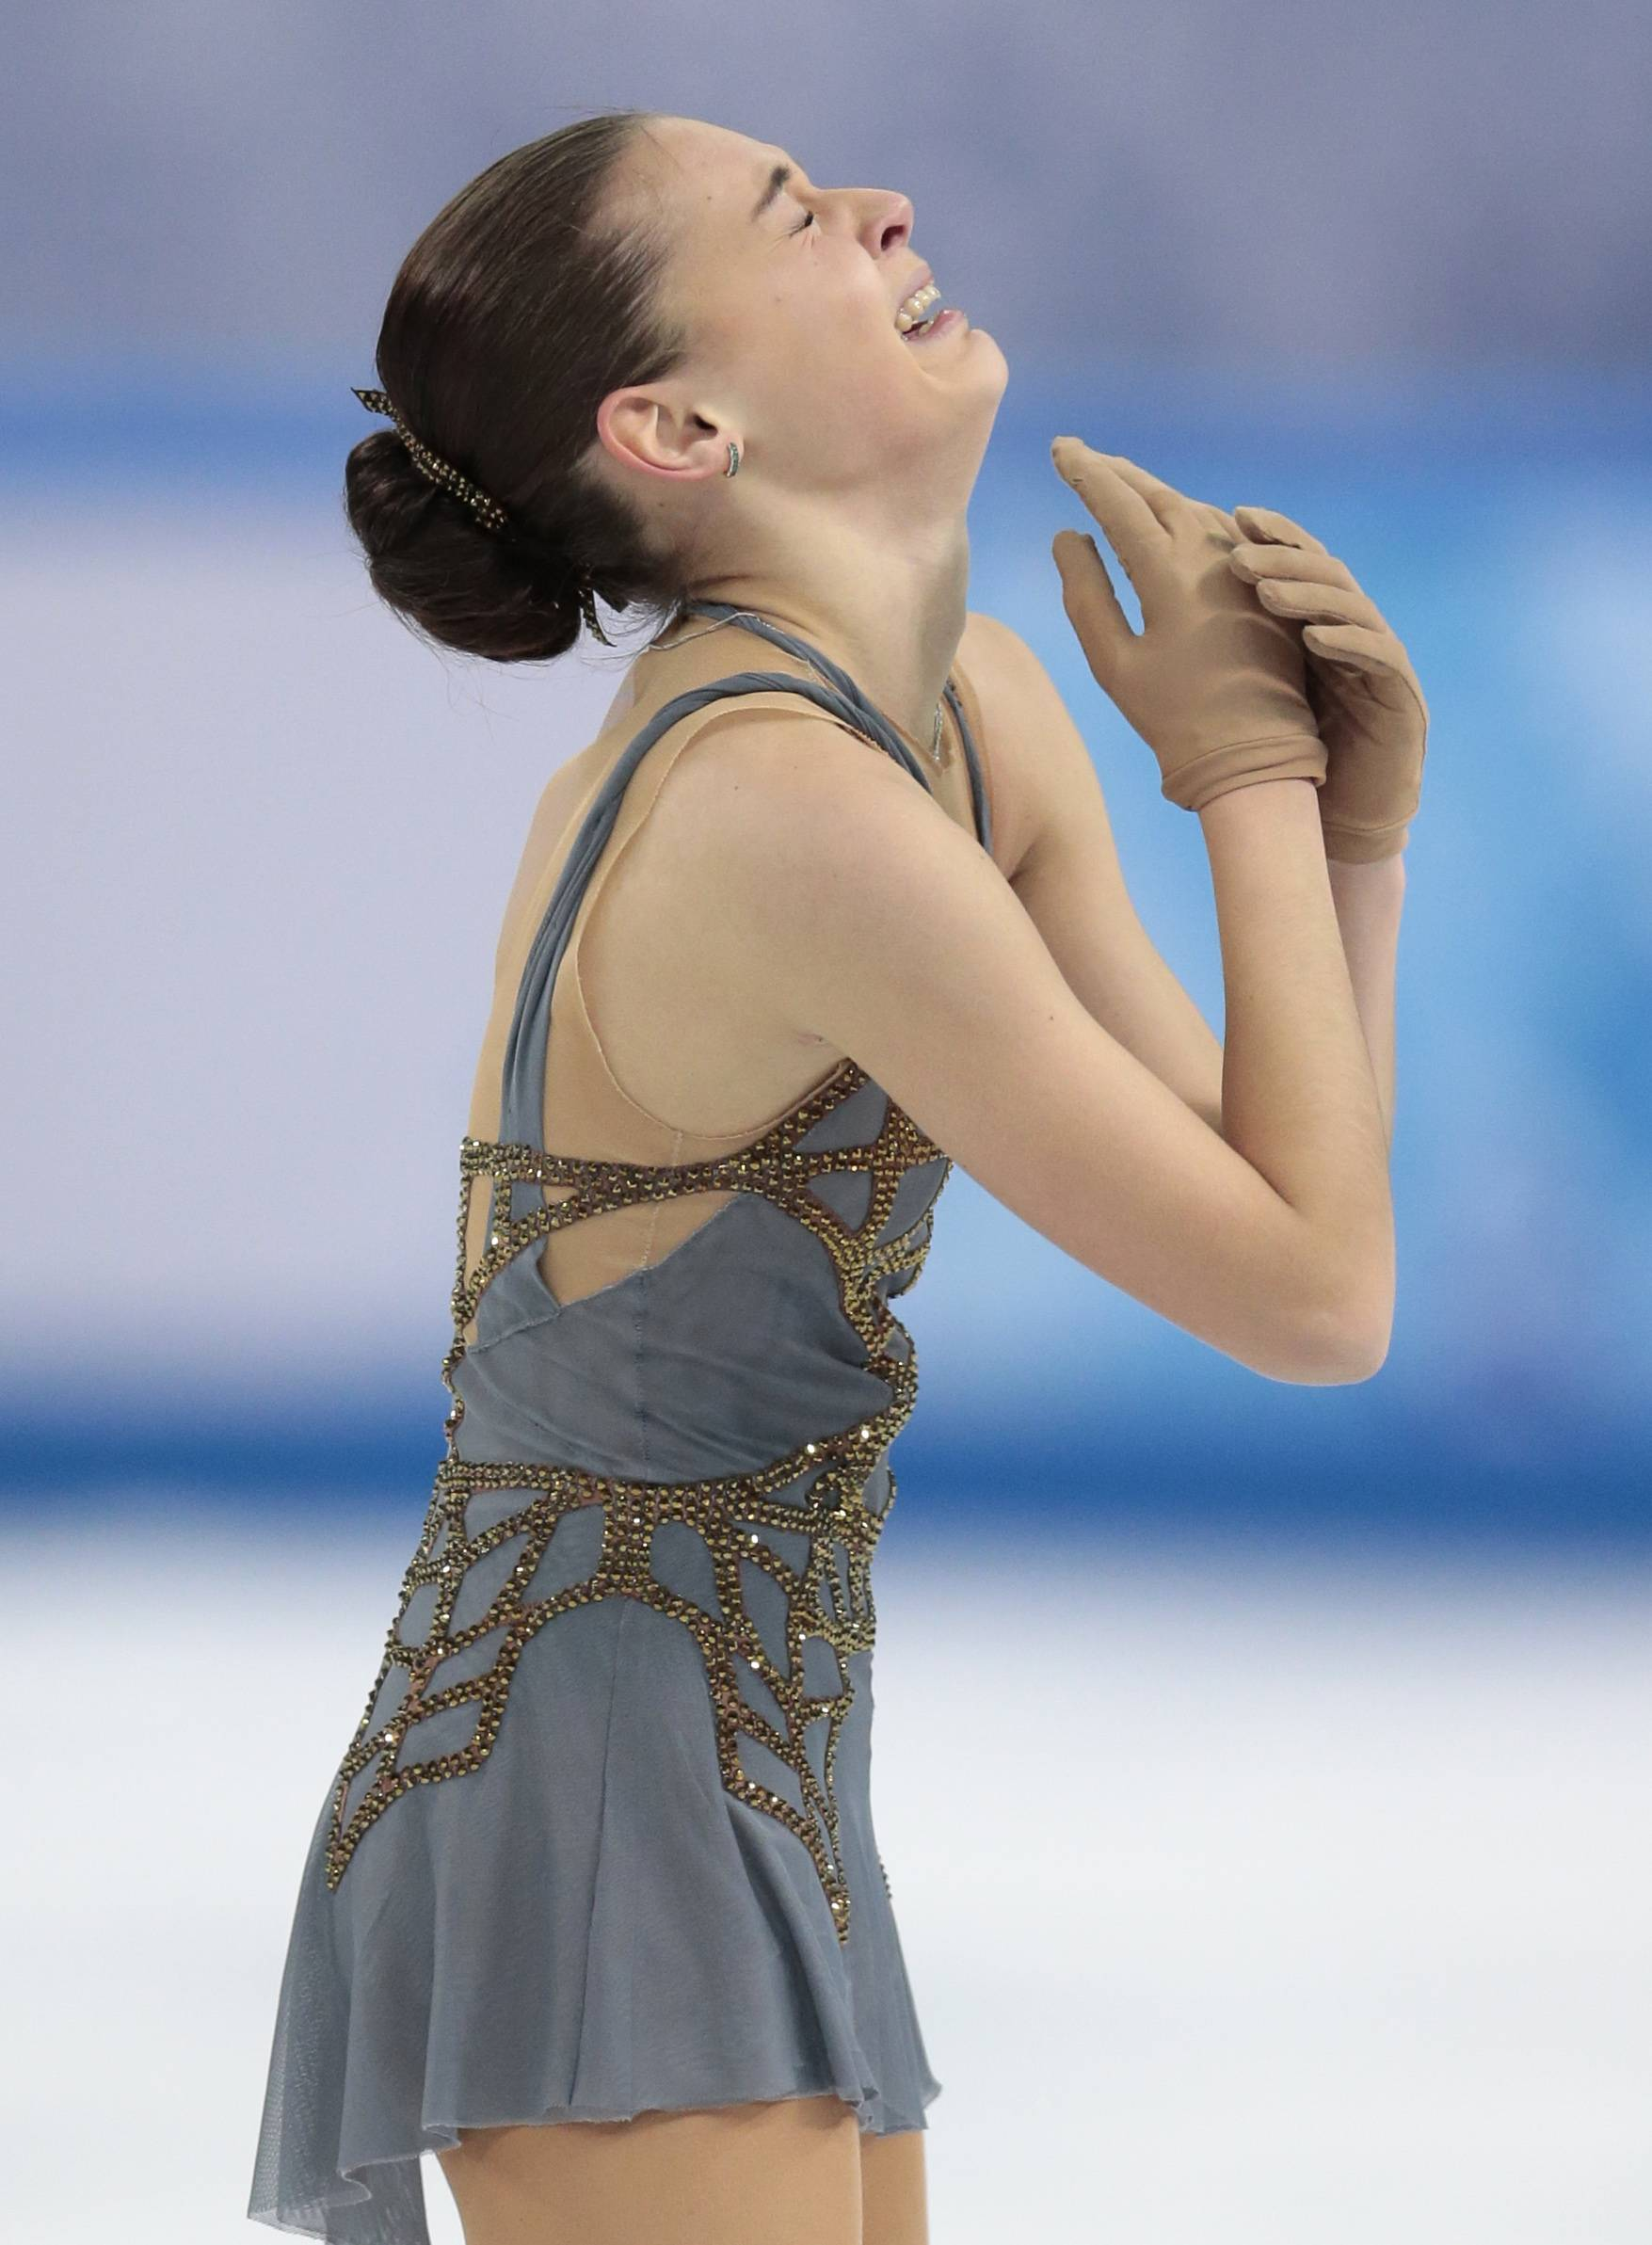 Adelina Sotnikova of Russia reacts Thursday after completing her routine in the women's free skate figure skating finals at the Iceberg Skating Palace during the 2014 Winter Olympics in Sochi, Russia.